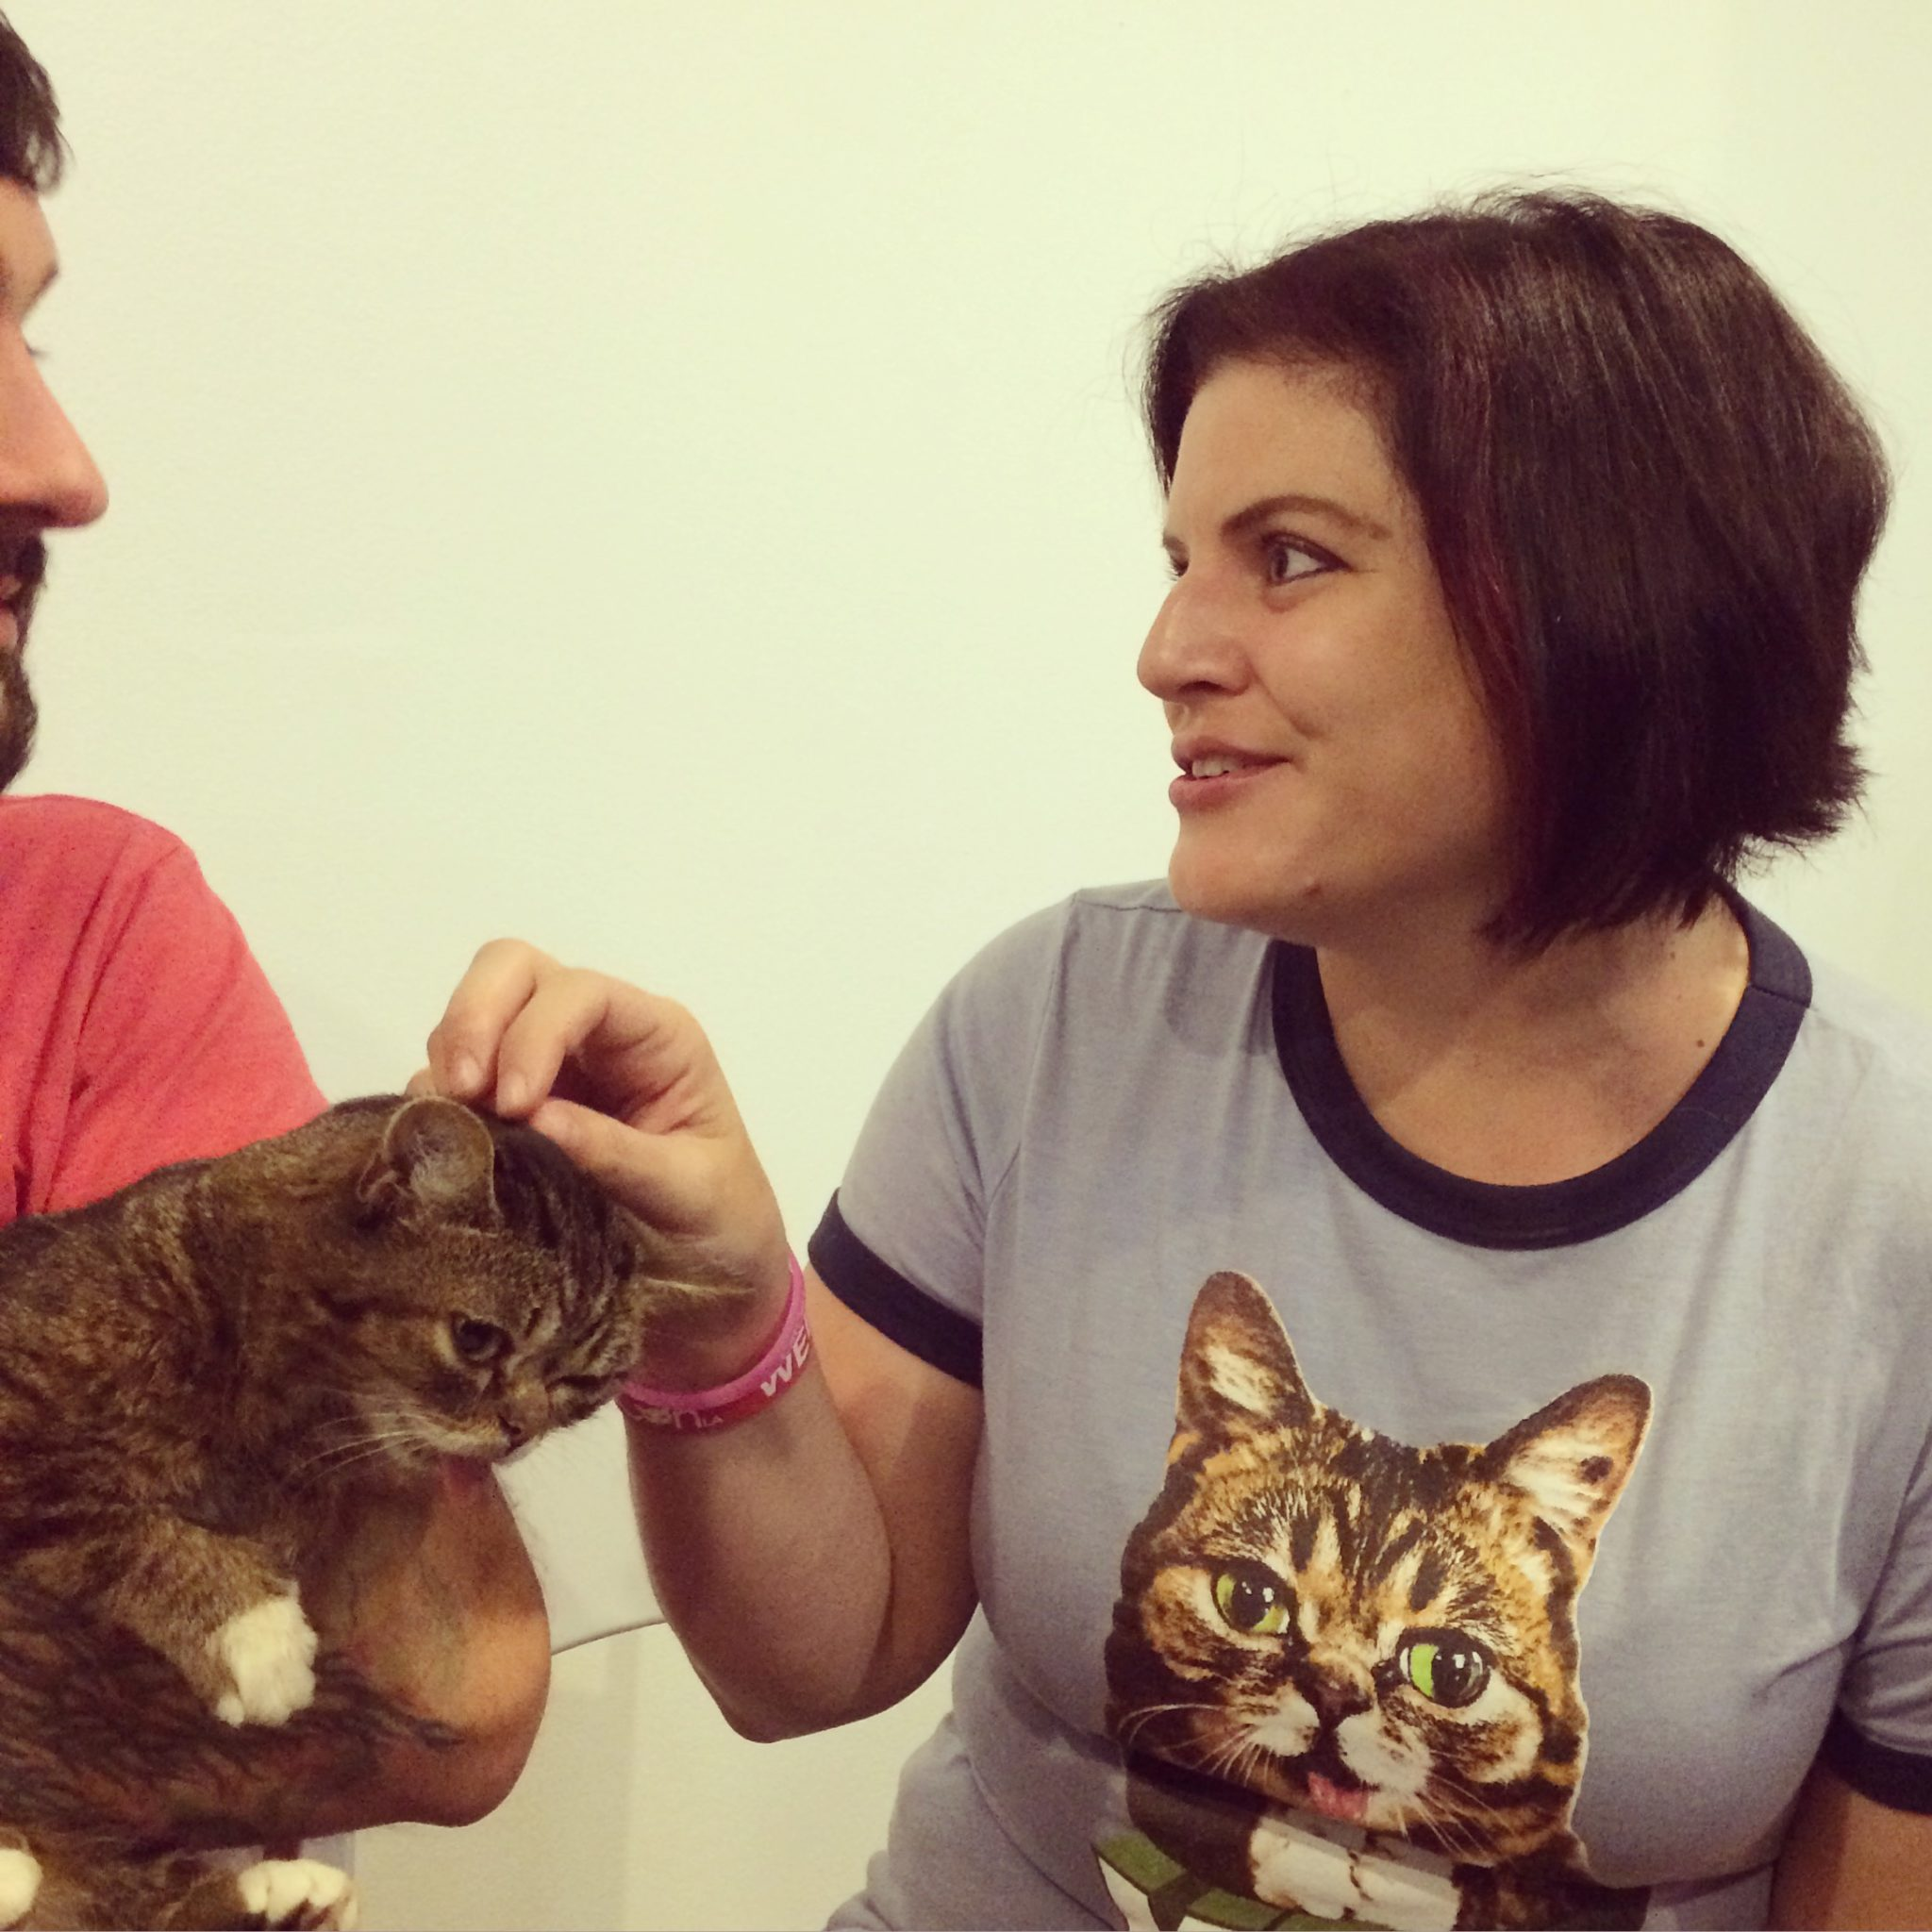 Lil BUB and Marci 2